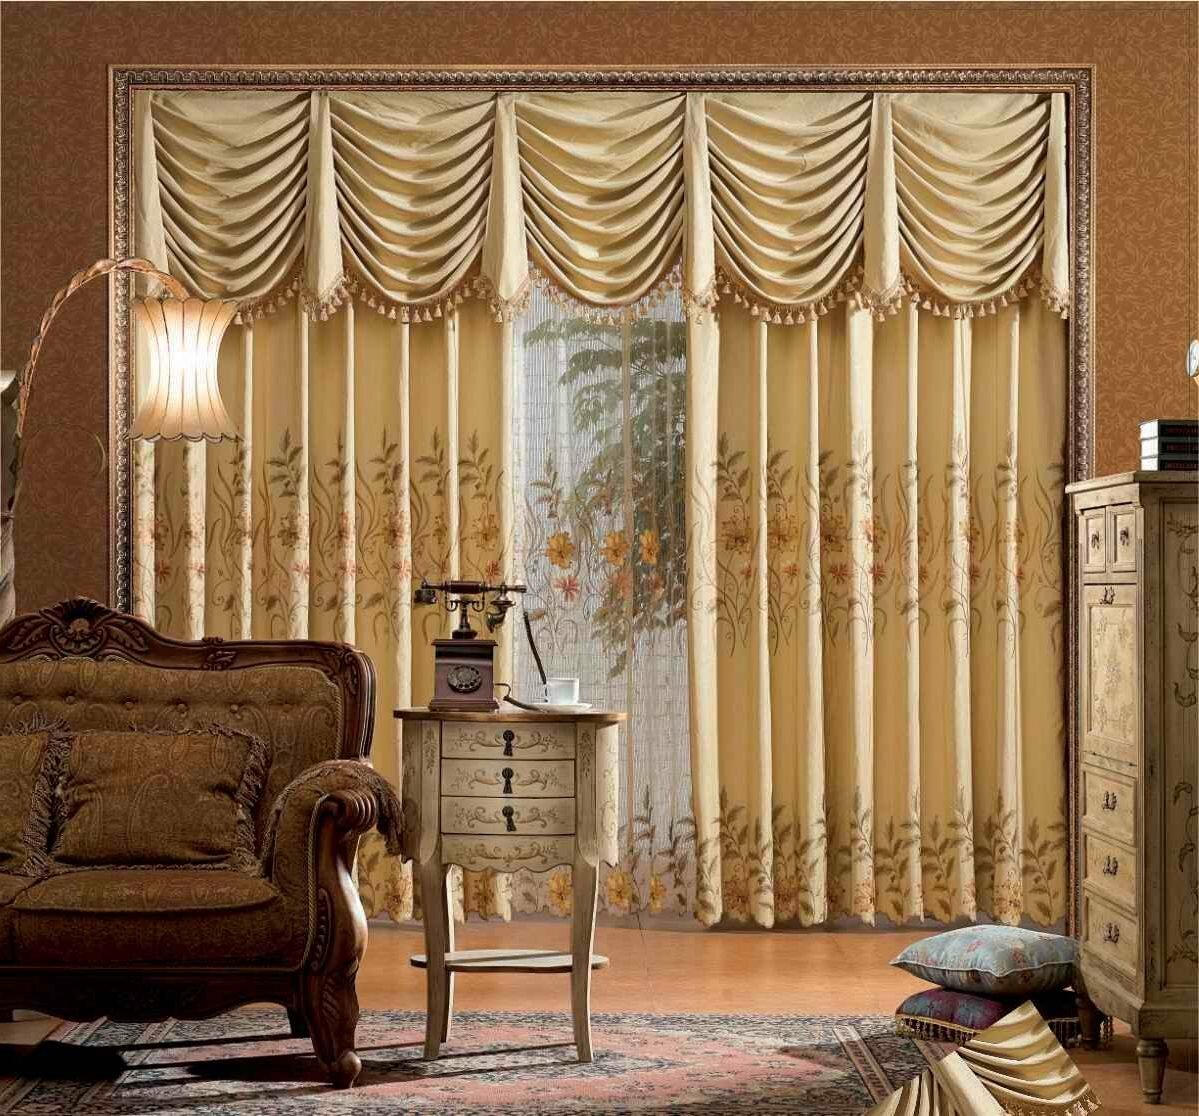 Cute Living Room Valances for Your Home Decorating Ideas: Window Treatments With Valances | Livingroom Valances | Living Room Valances